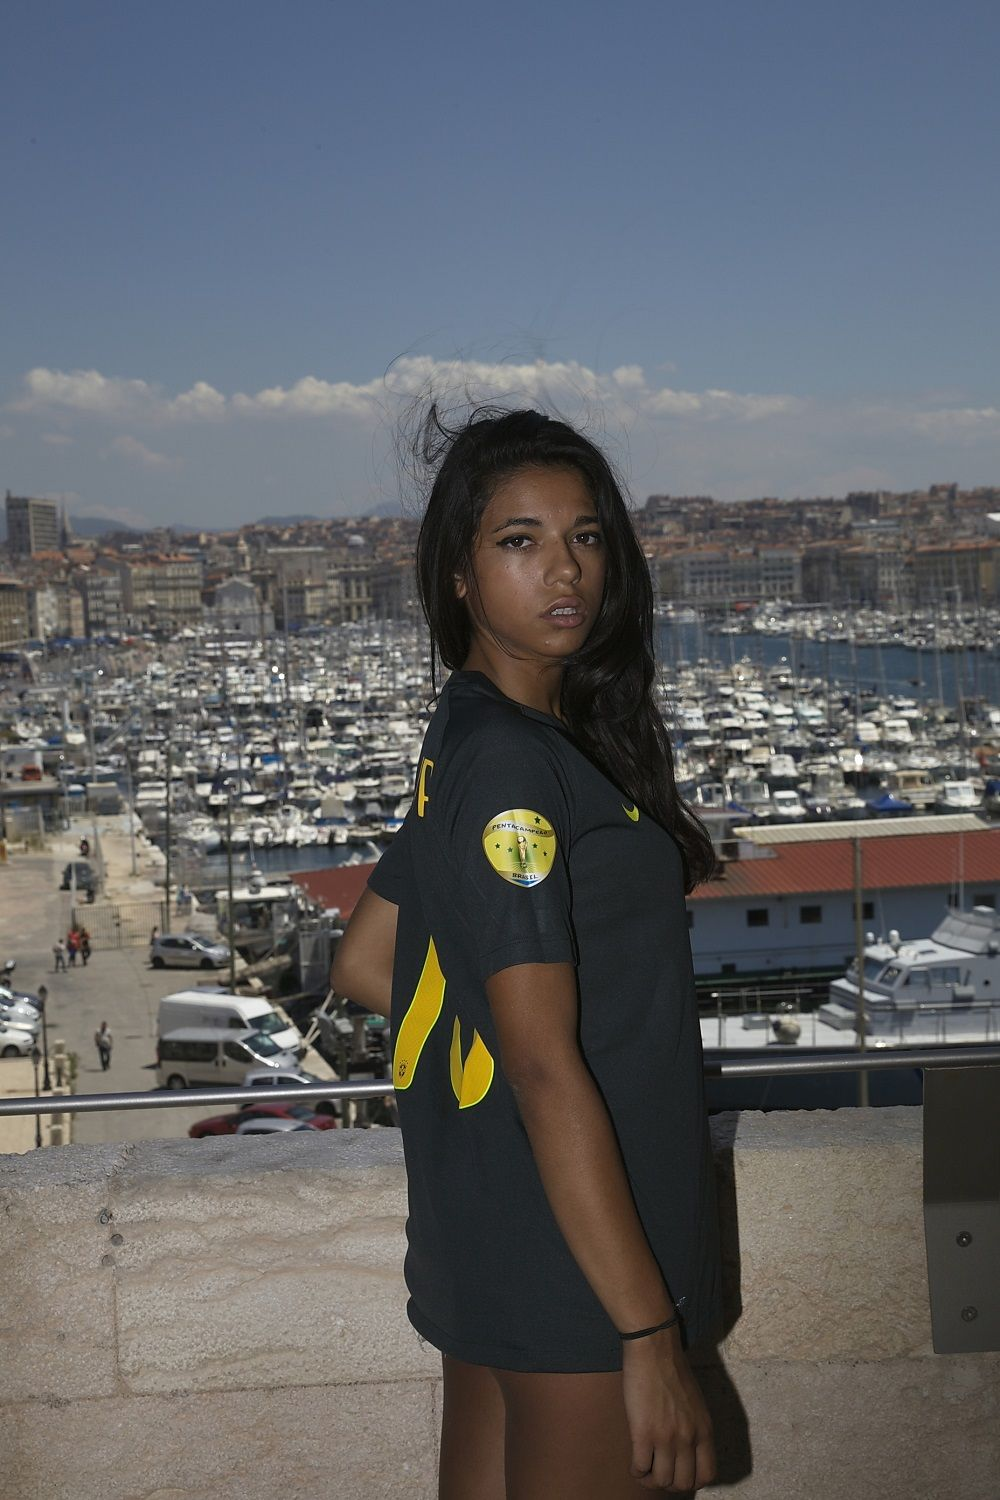 Brazil 3rd jersey brasil girl vieux port a marseille clouds in the sky soccer jersey - Club house vieux port marseille ...